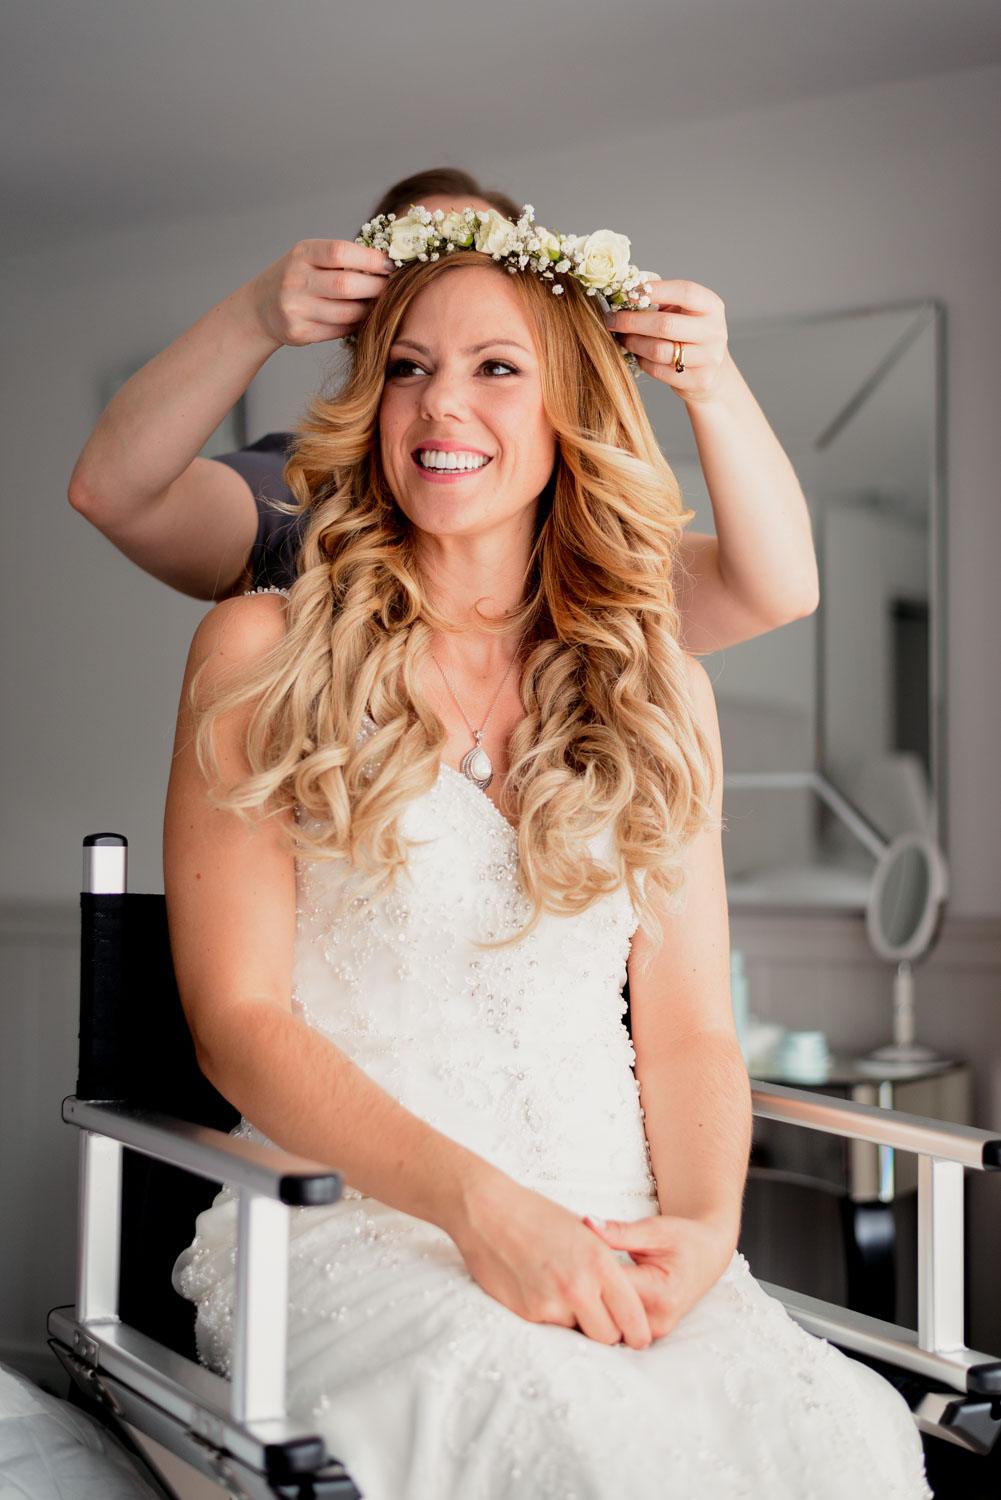 Bridal flower crown going on